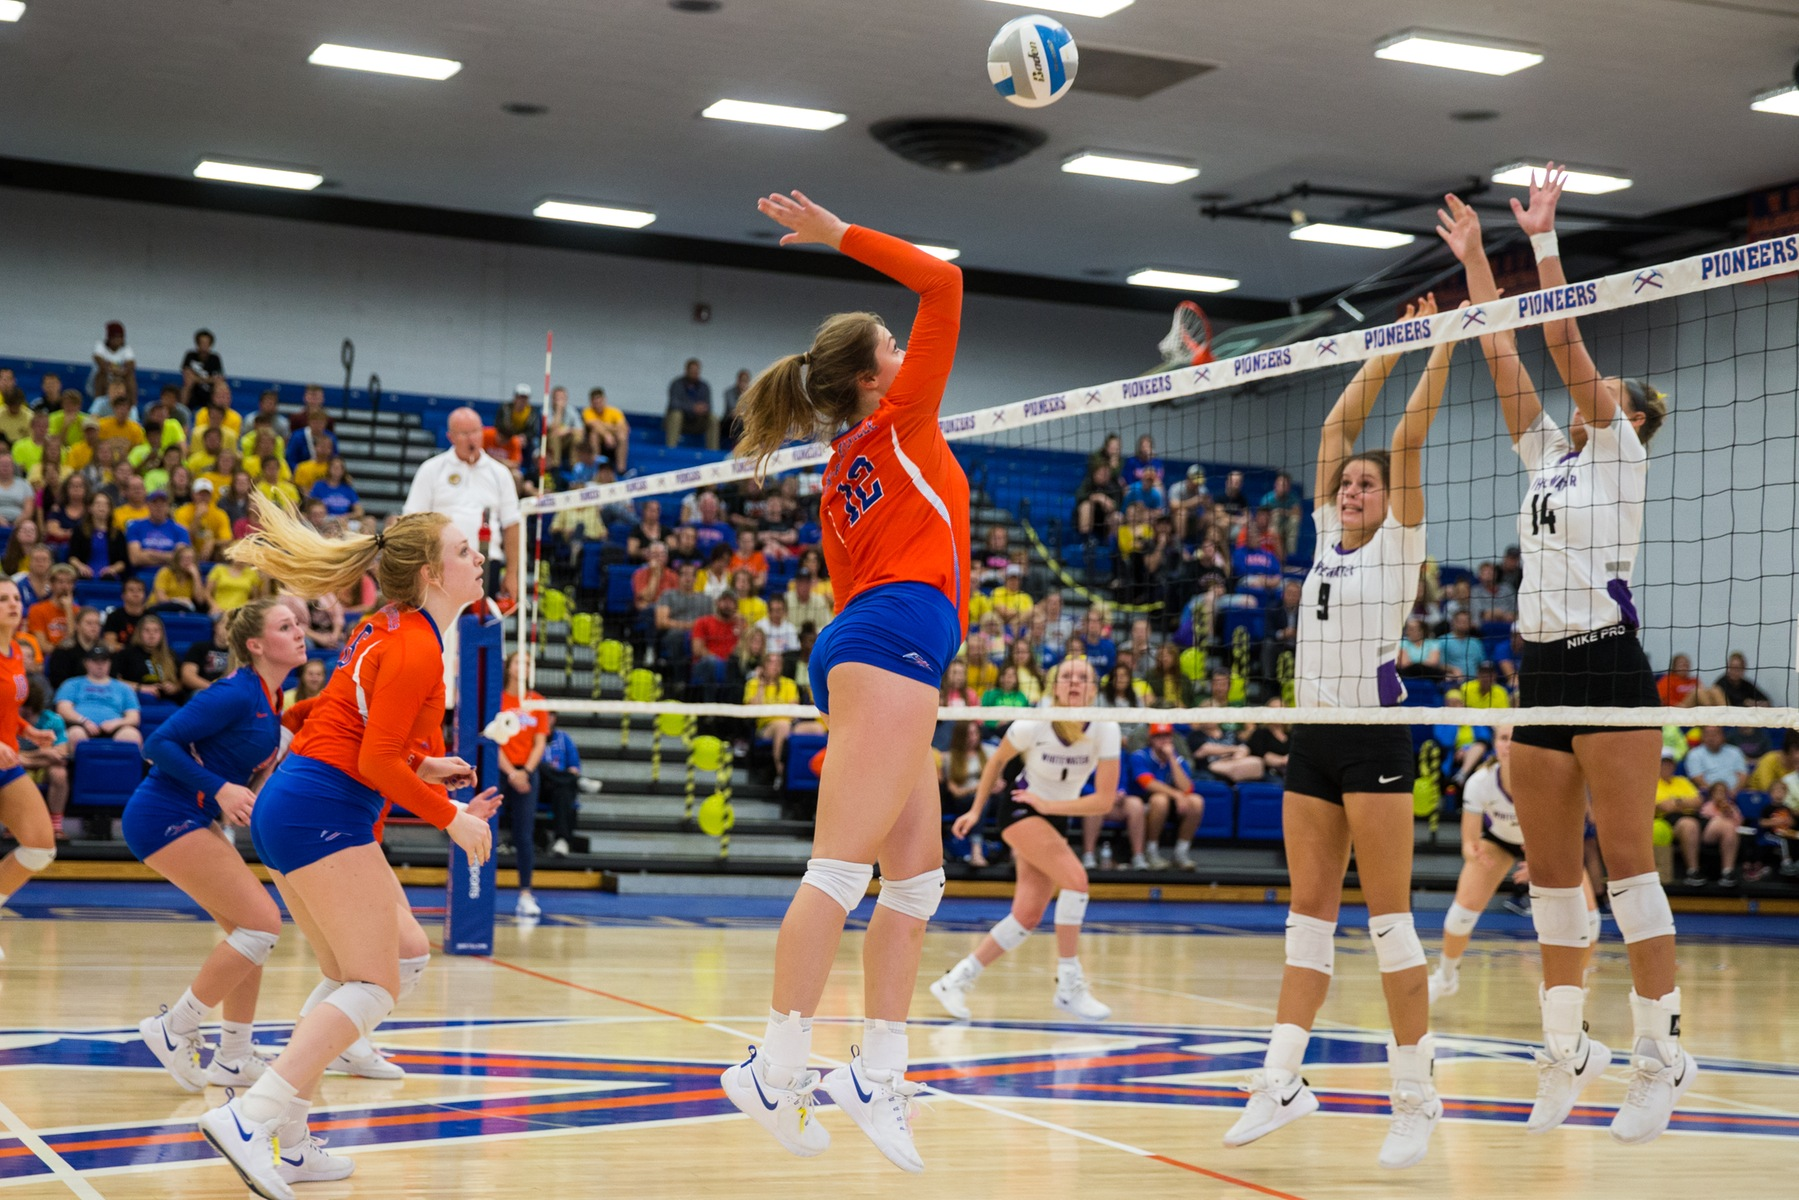 Pioneers fall to Titans in conference match